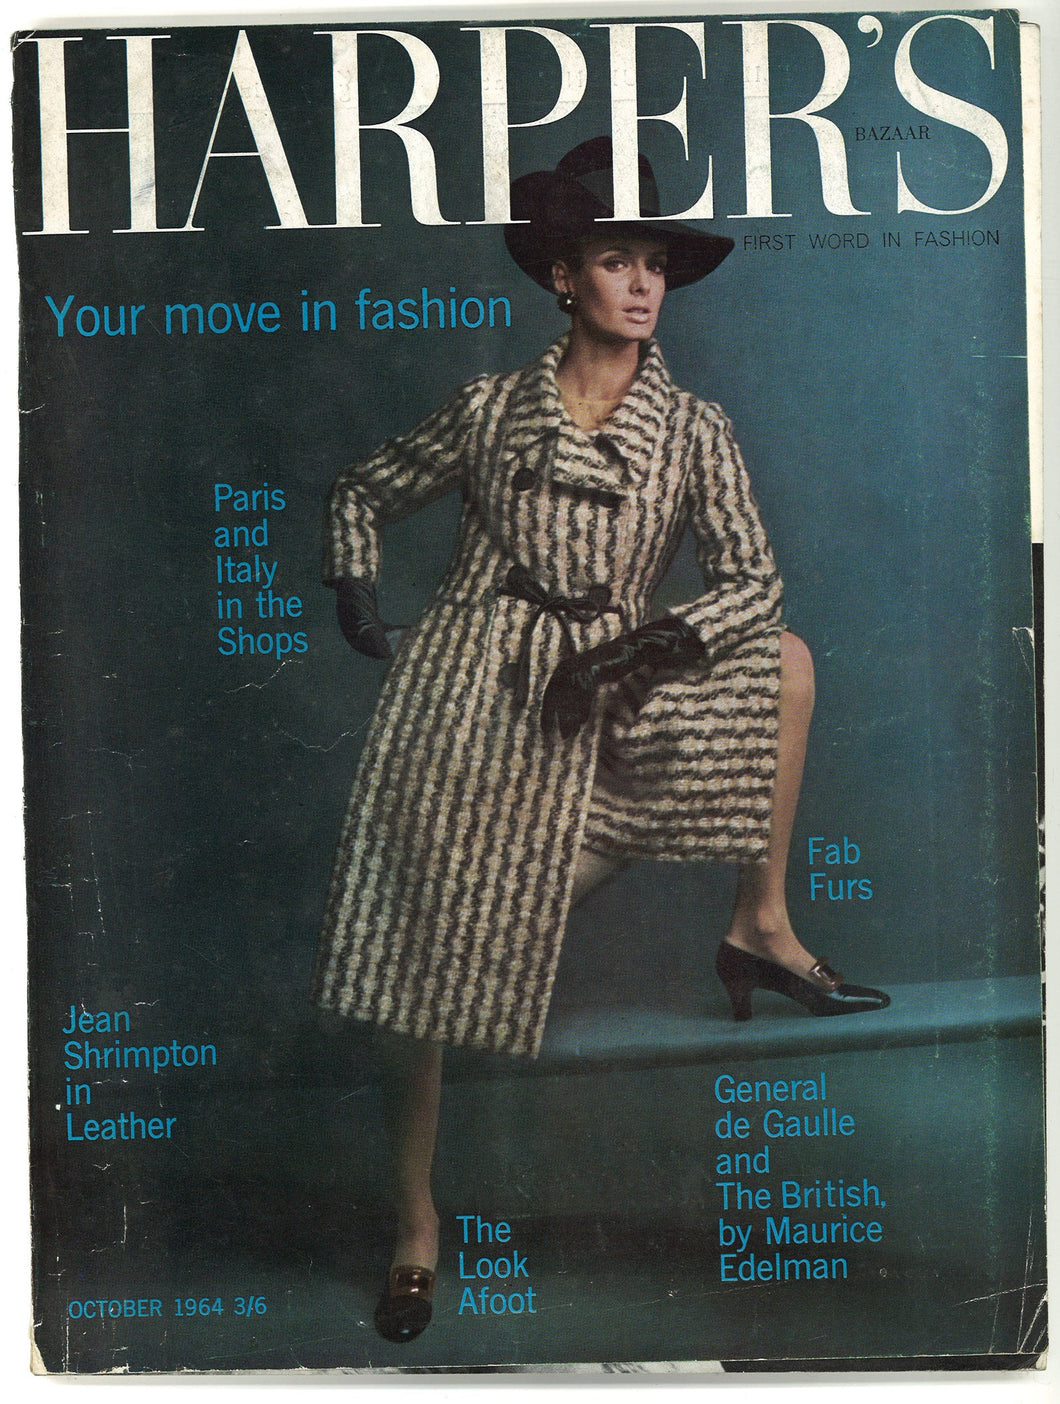 Harper's Bazaar (UK) Oct 1964